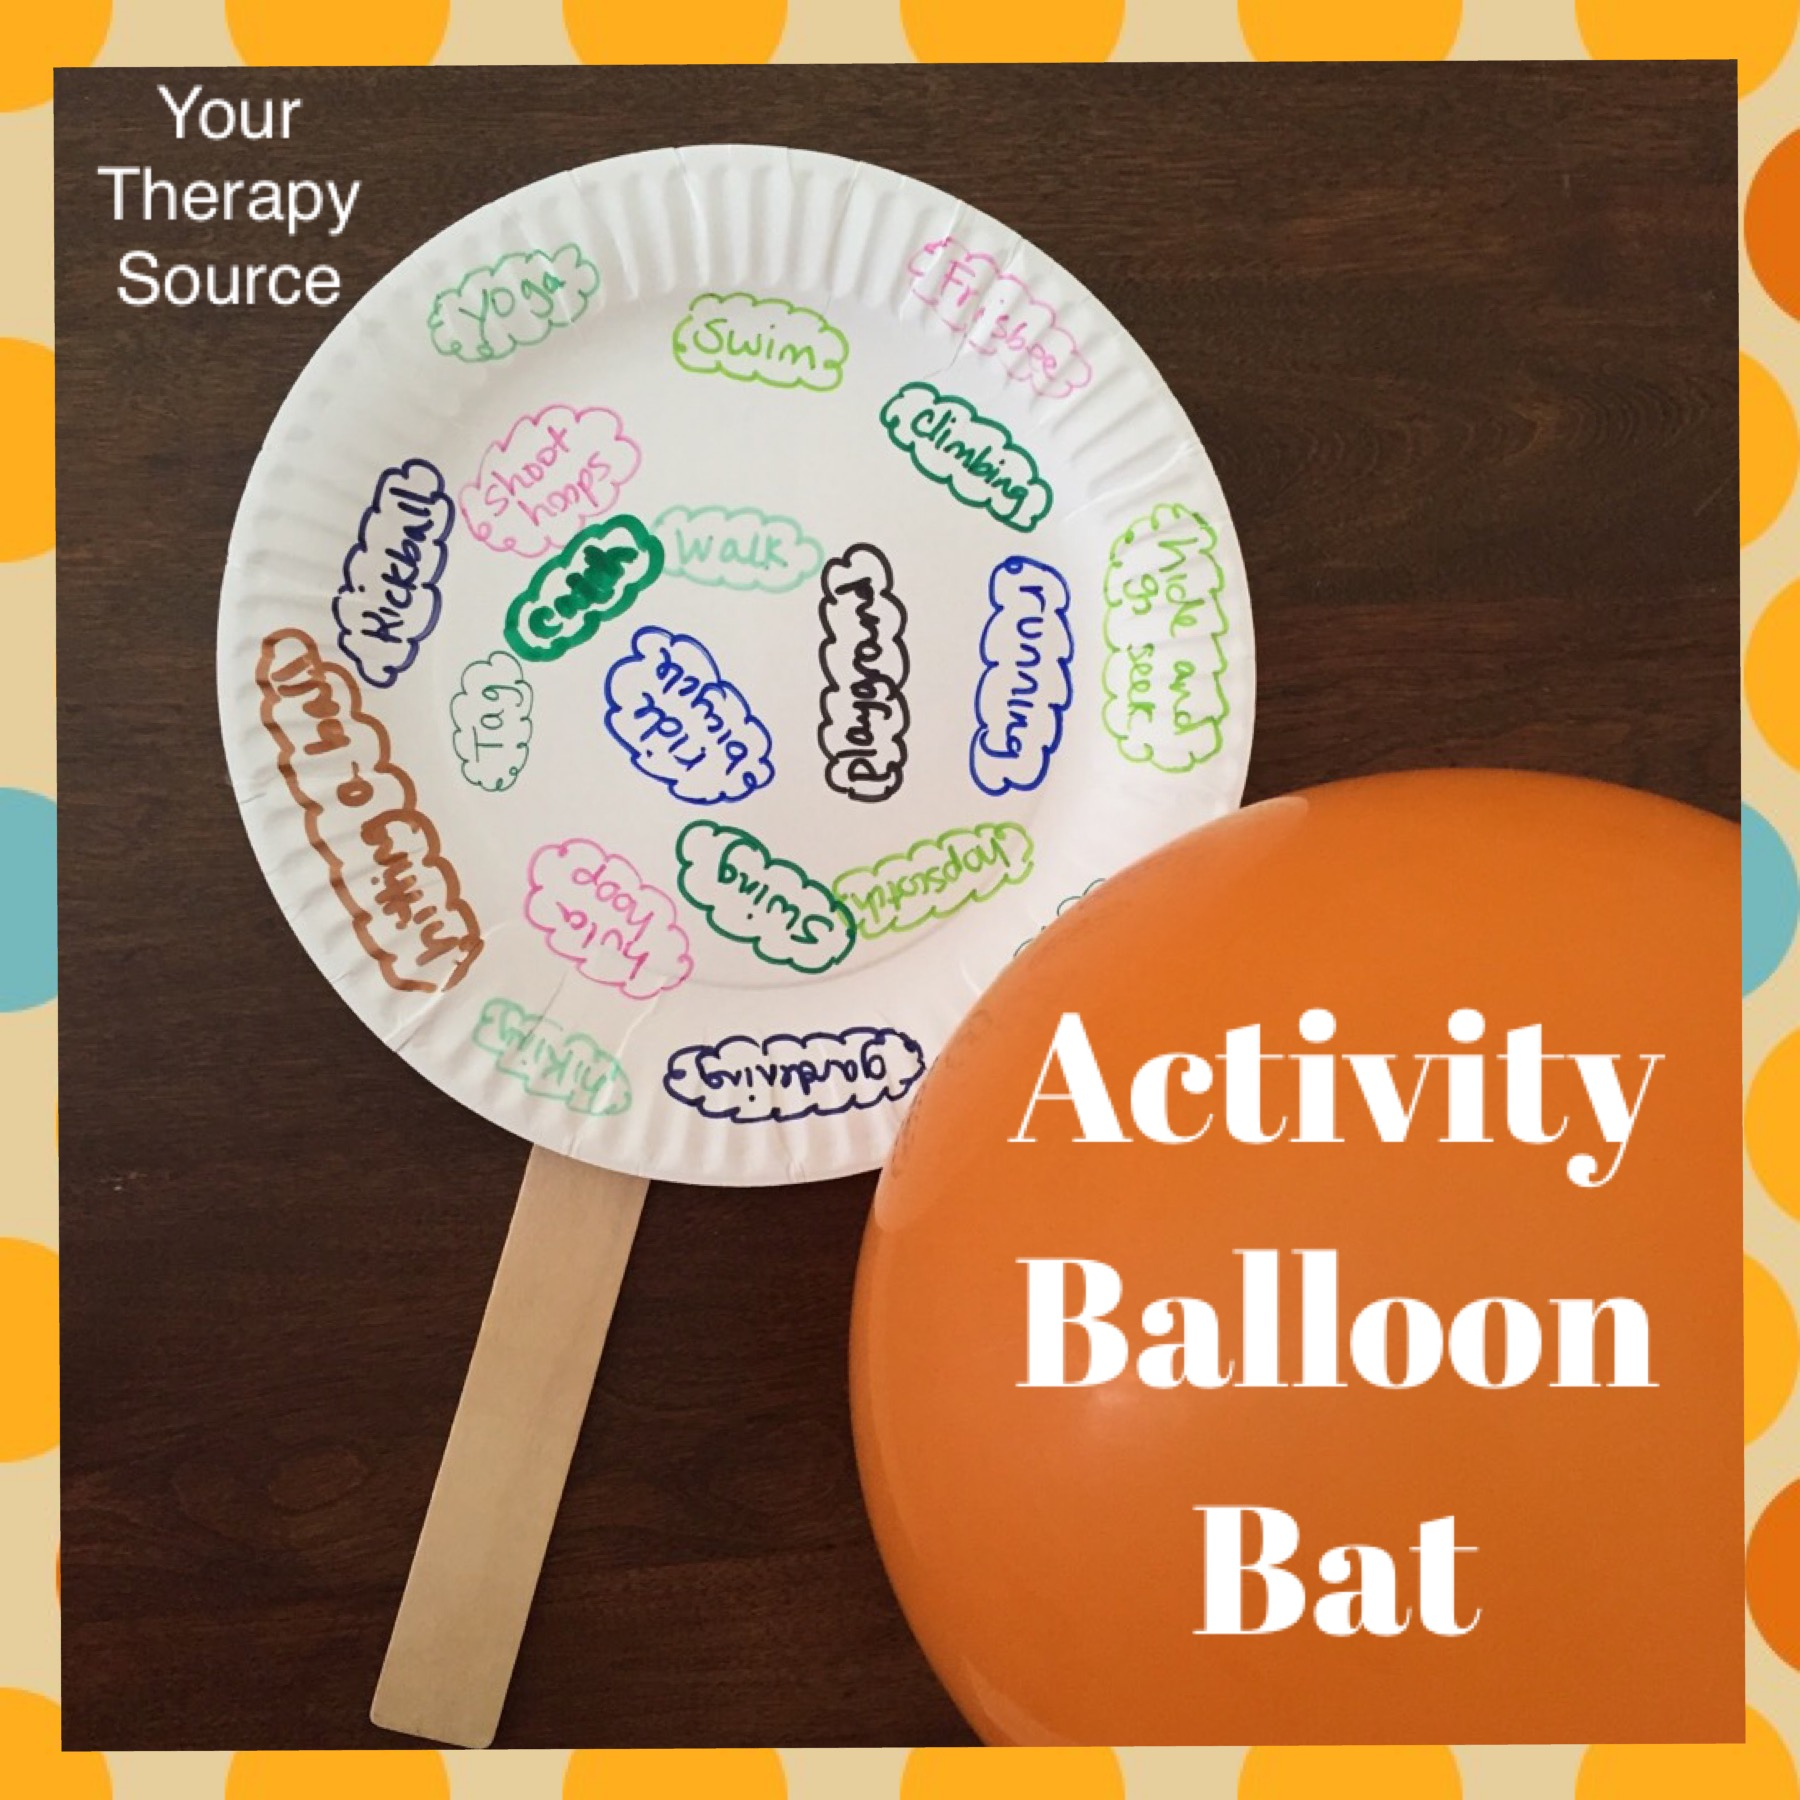 If you need a fun gross motor group activity idea that also includes fine motor skills and coordination skills, this balloon bat is perfect.